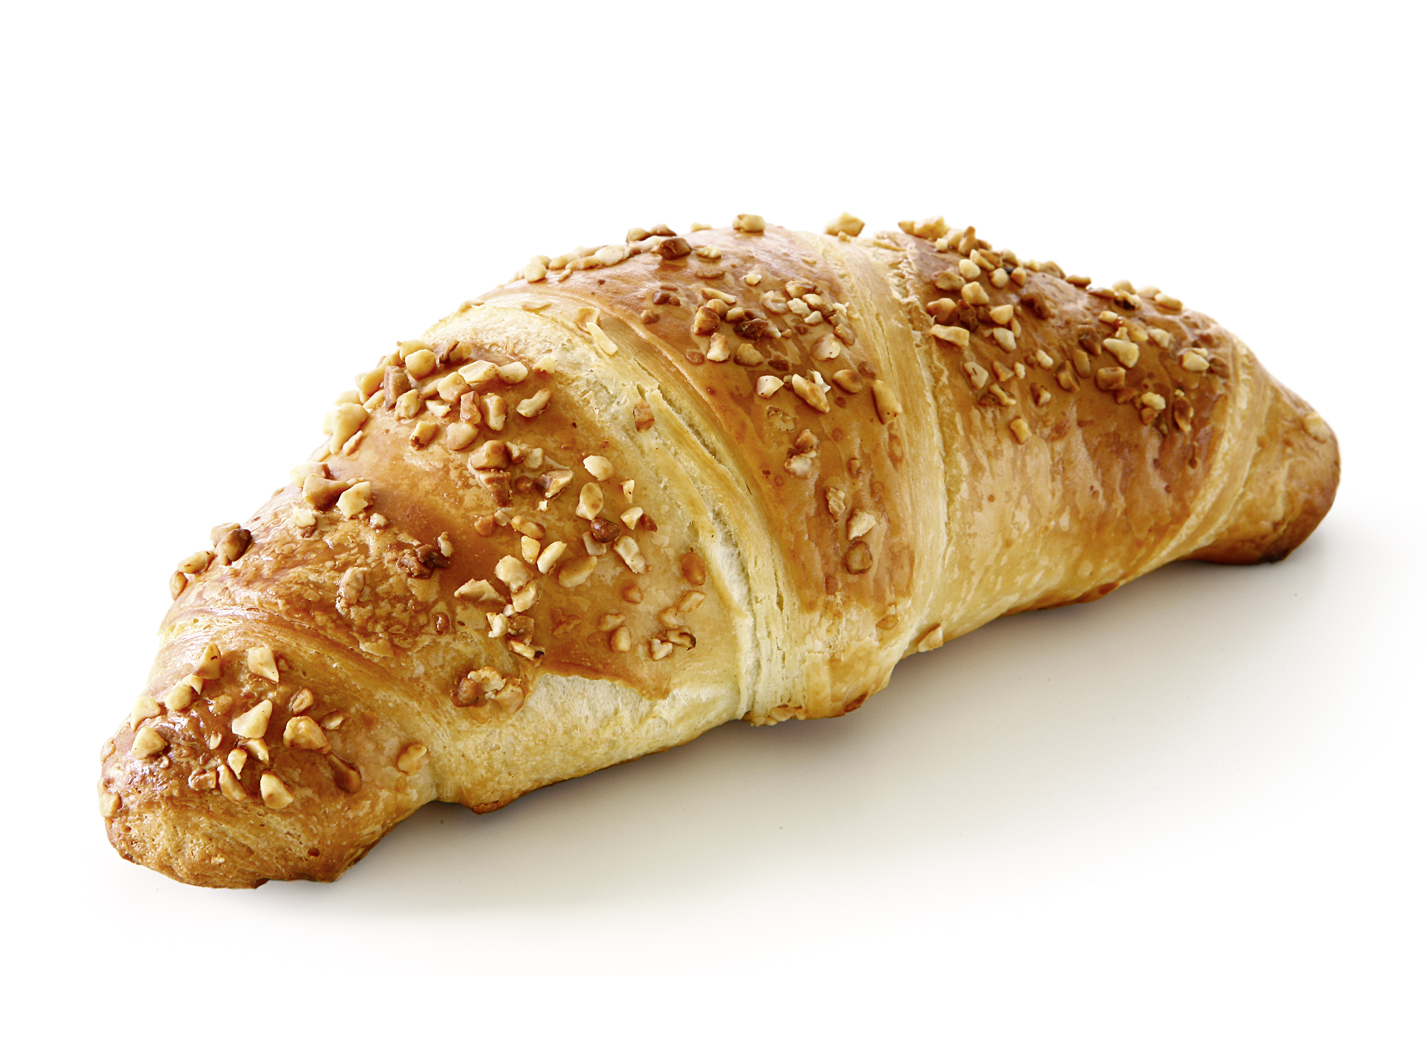 Butter Croissant Praliné (Nut-Nougat) - Dough pastry with 20% butter/ filled with 17% chocolatehazelnut cream and decorated with hazelnuts